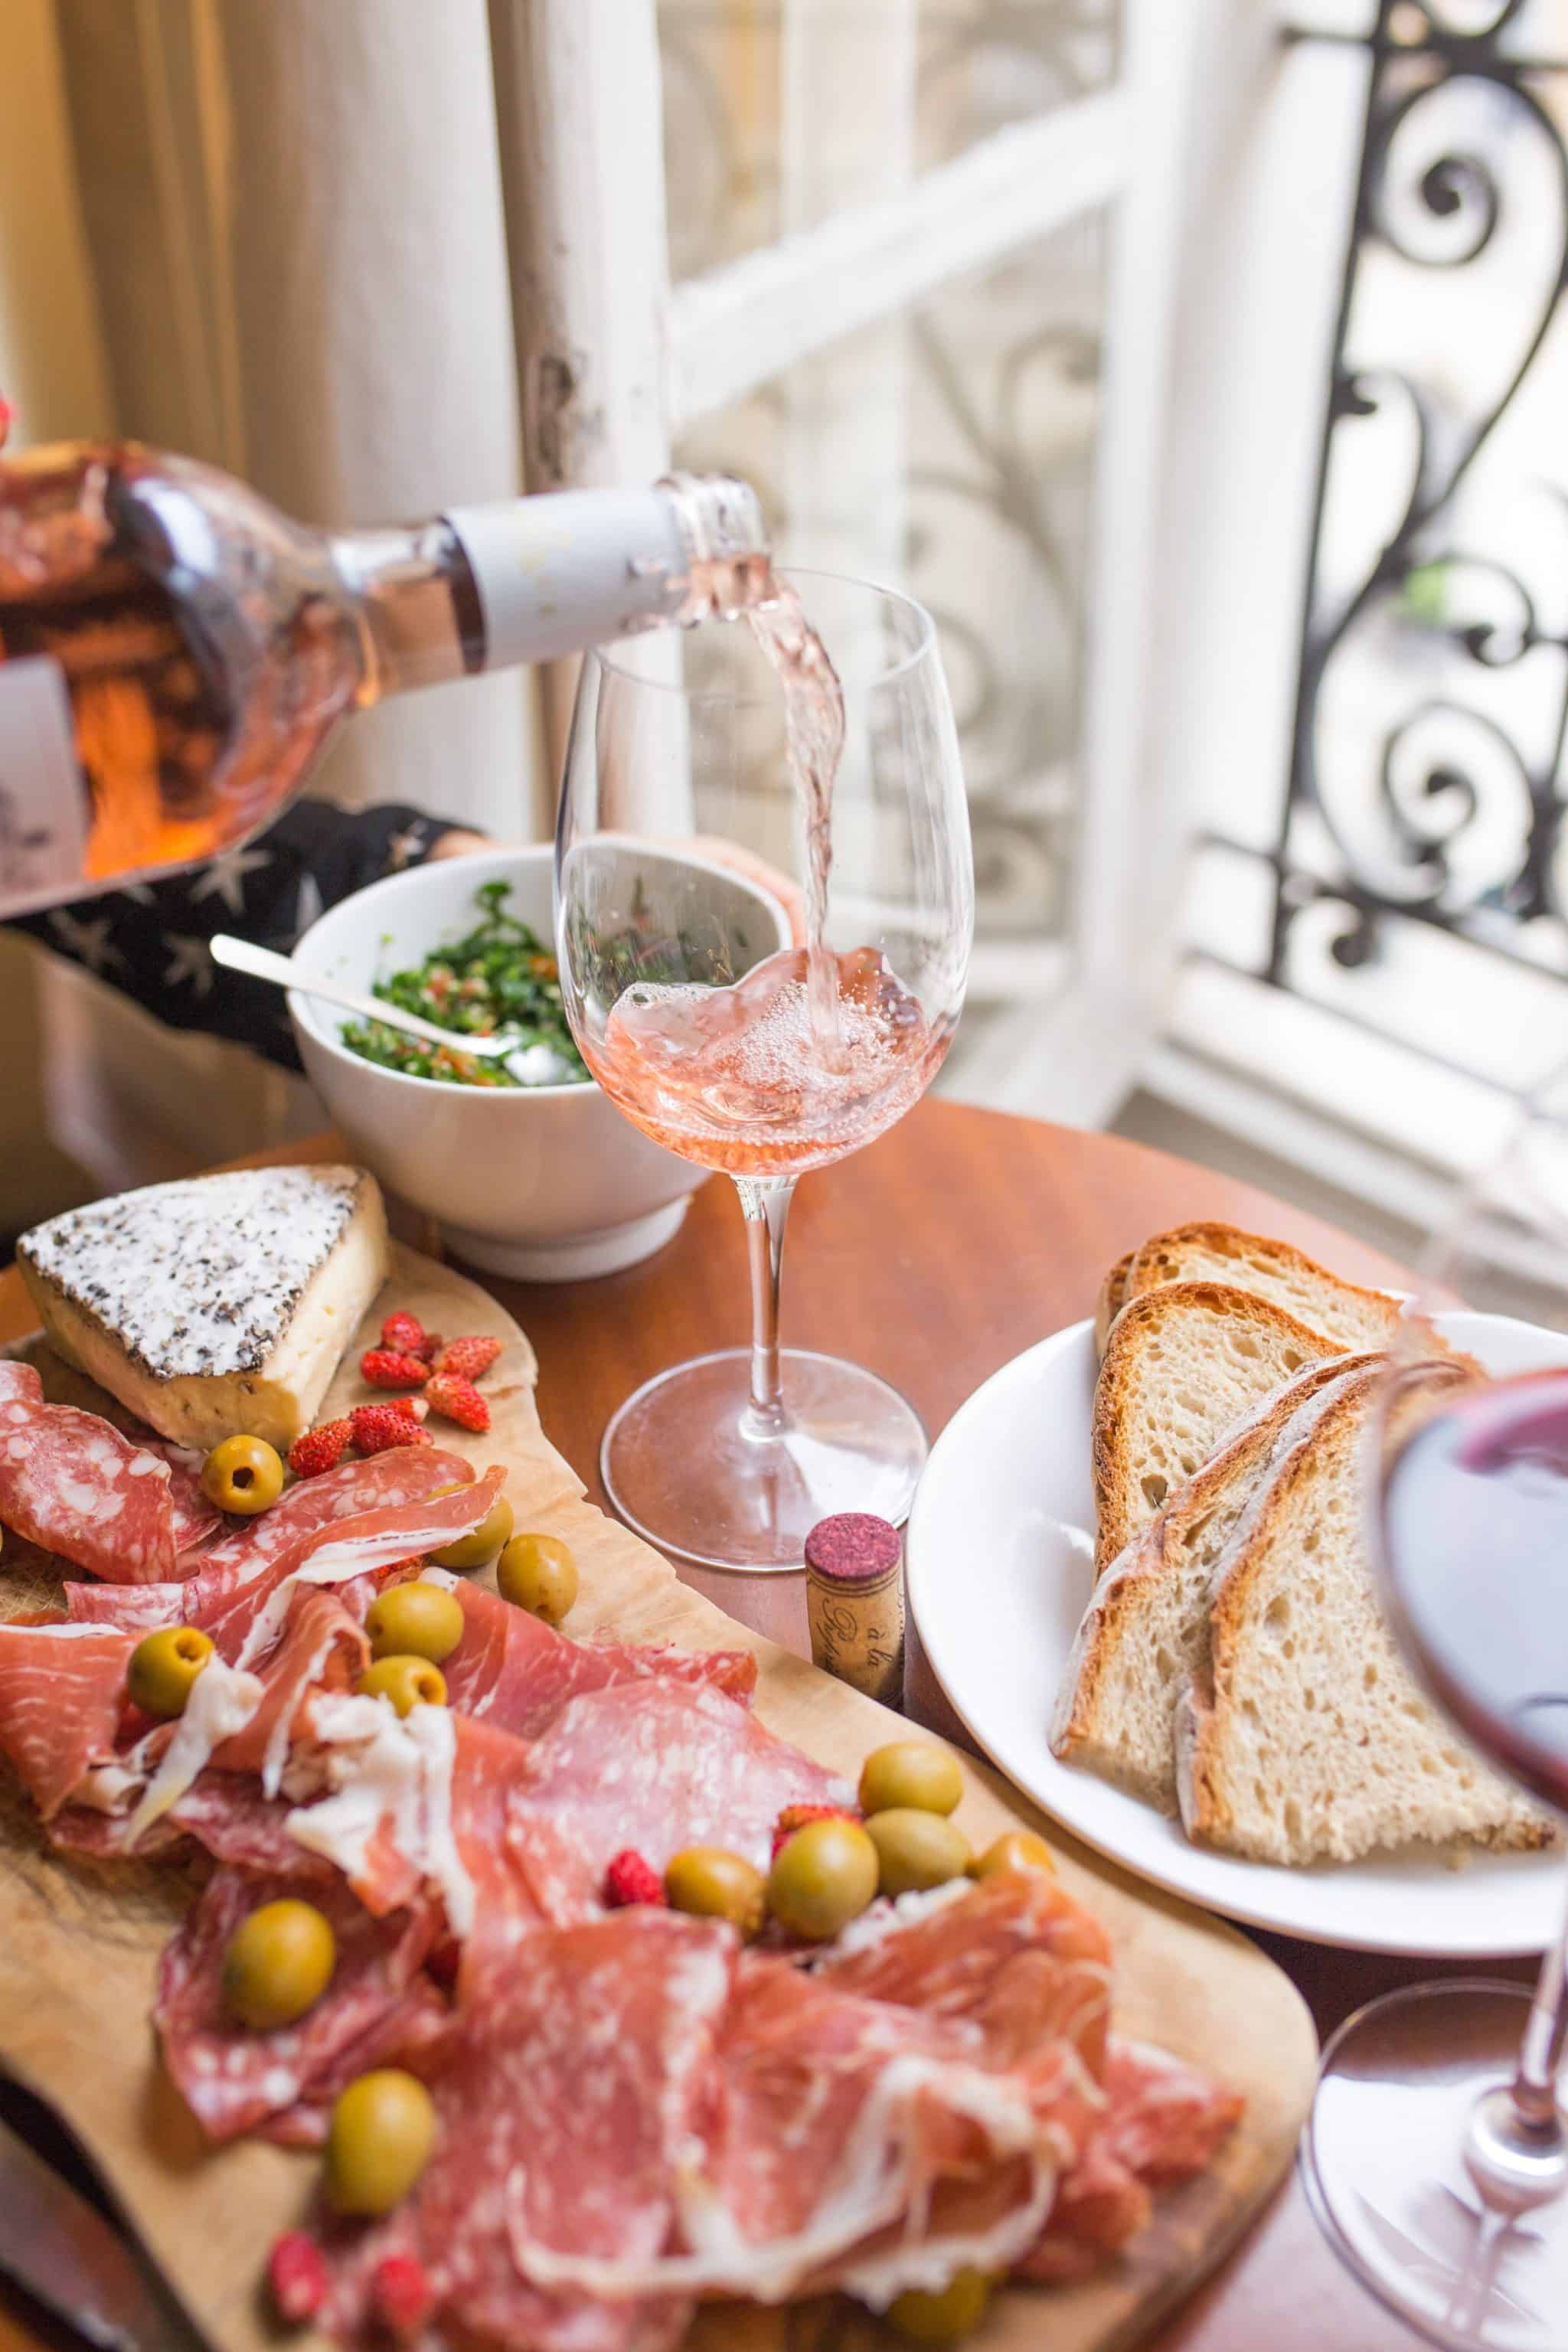 Dining table topped with bread prosciutto, cheese, salad and rosé wine